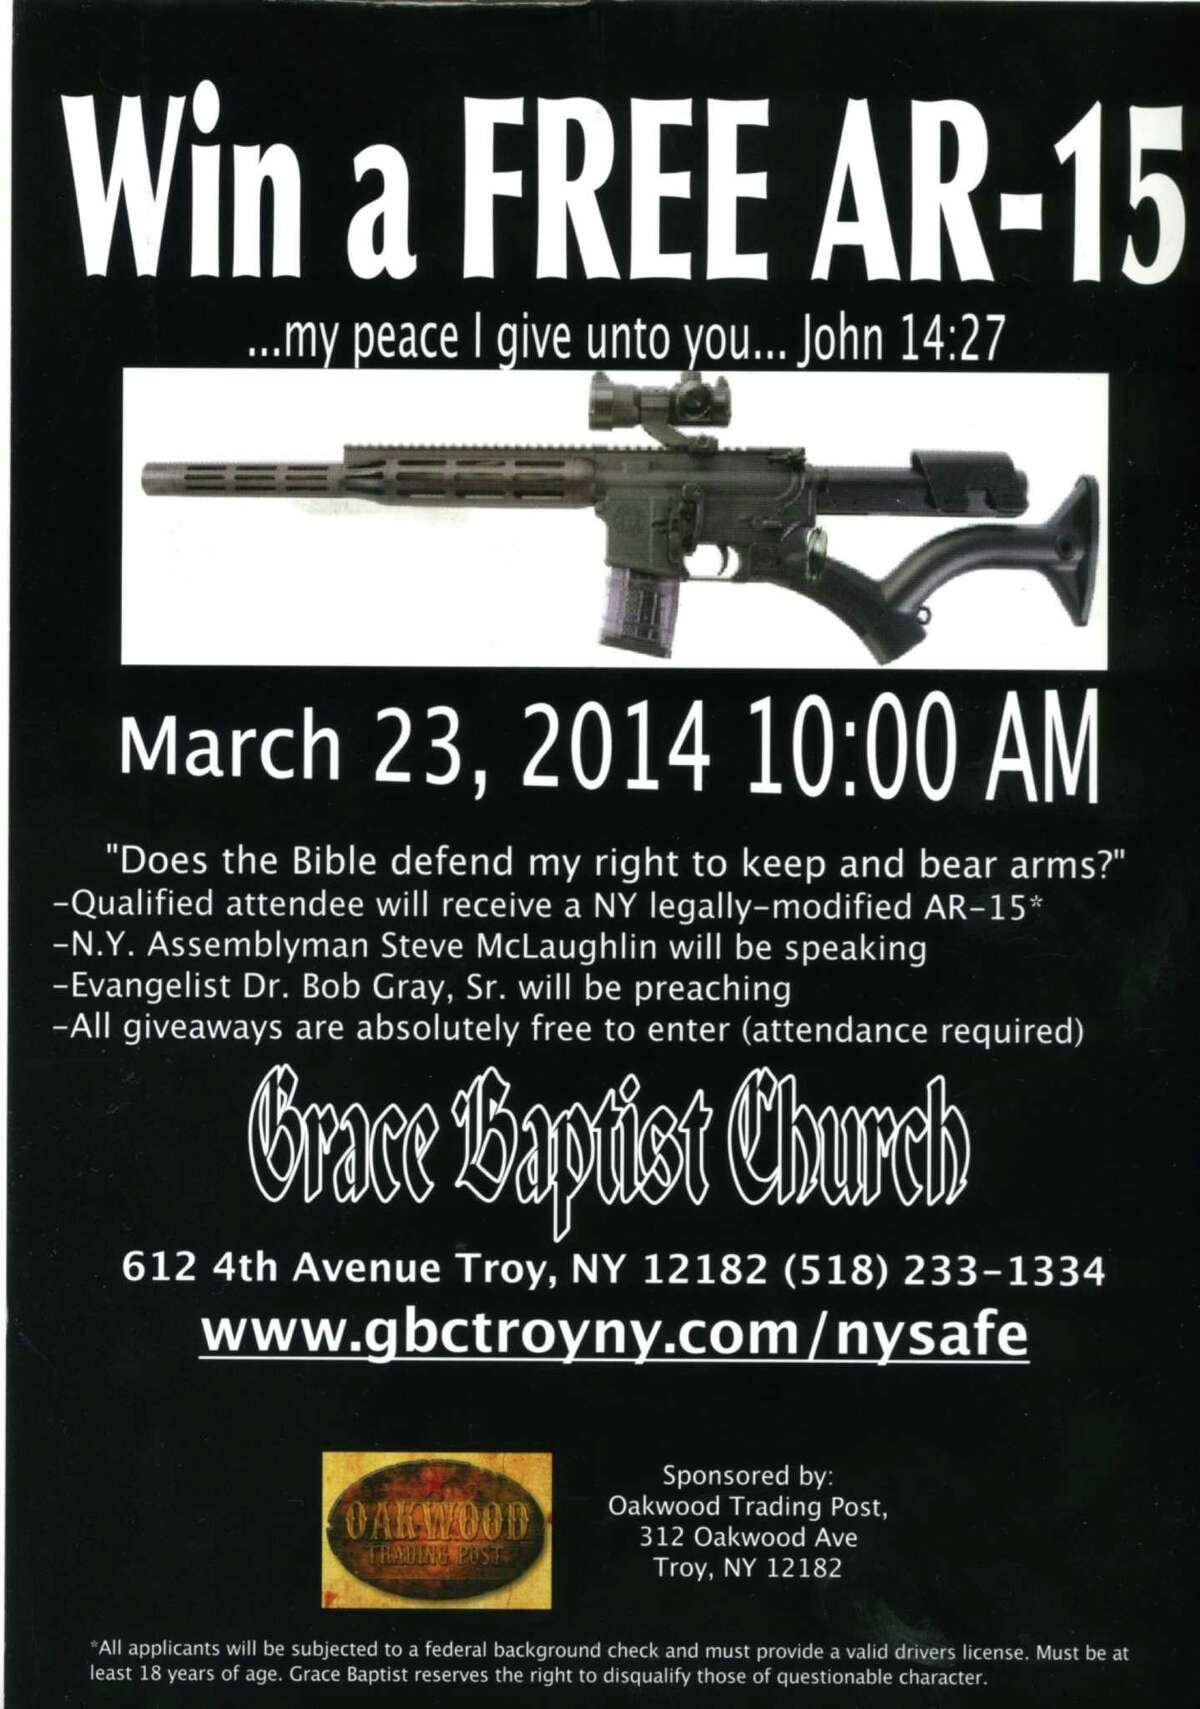 Pastor John Koletas of the Grace Baptist Church in Troy plans to give away an AR-15 assault rifle at an upcoming service. This flier promises a free AR-15 giveway to people who attend the March 23 service at Grace Baptist on Fourth Avenue in Troy.